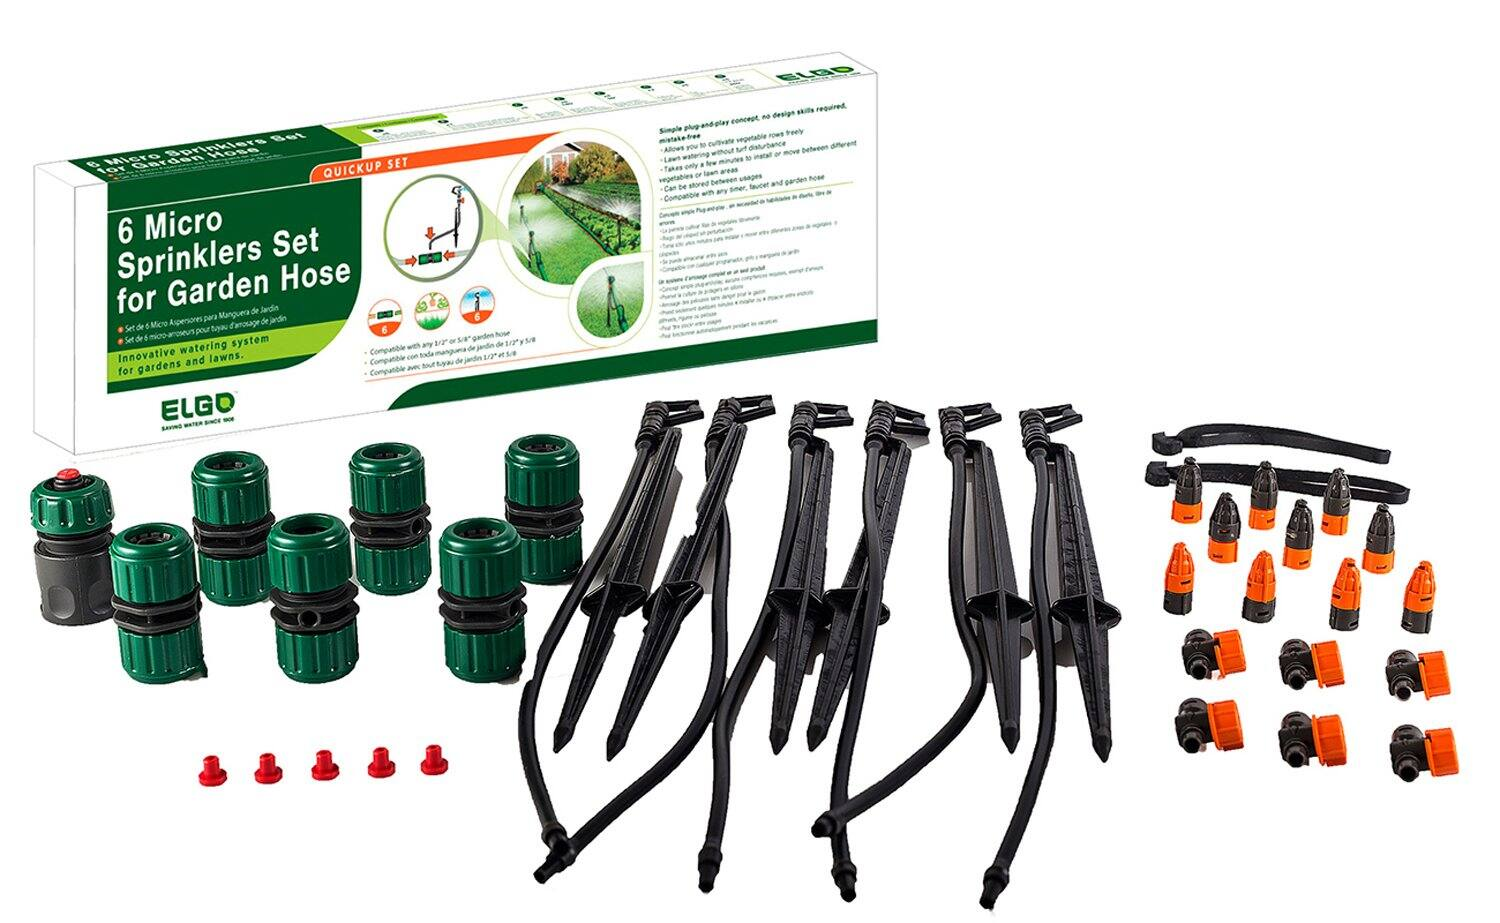 Elgo 6 Micro-Sprinklers Set $11.03 [ $8.27 AC ] + Free S/H for Prime